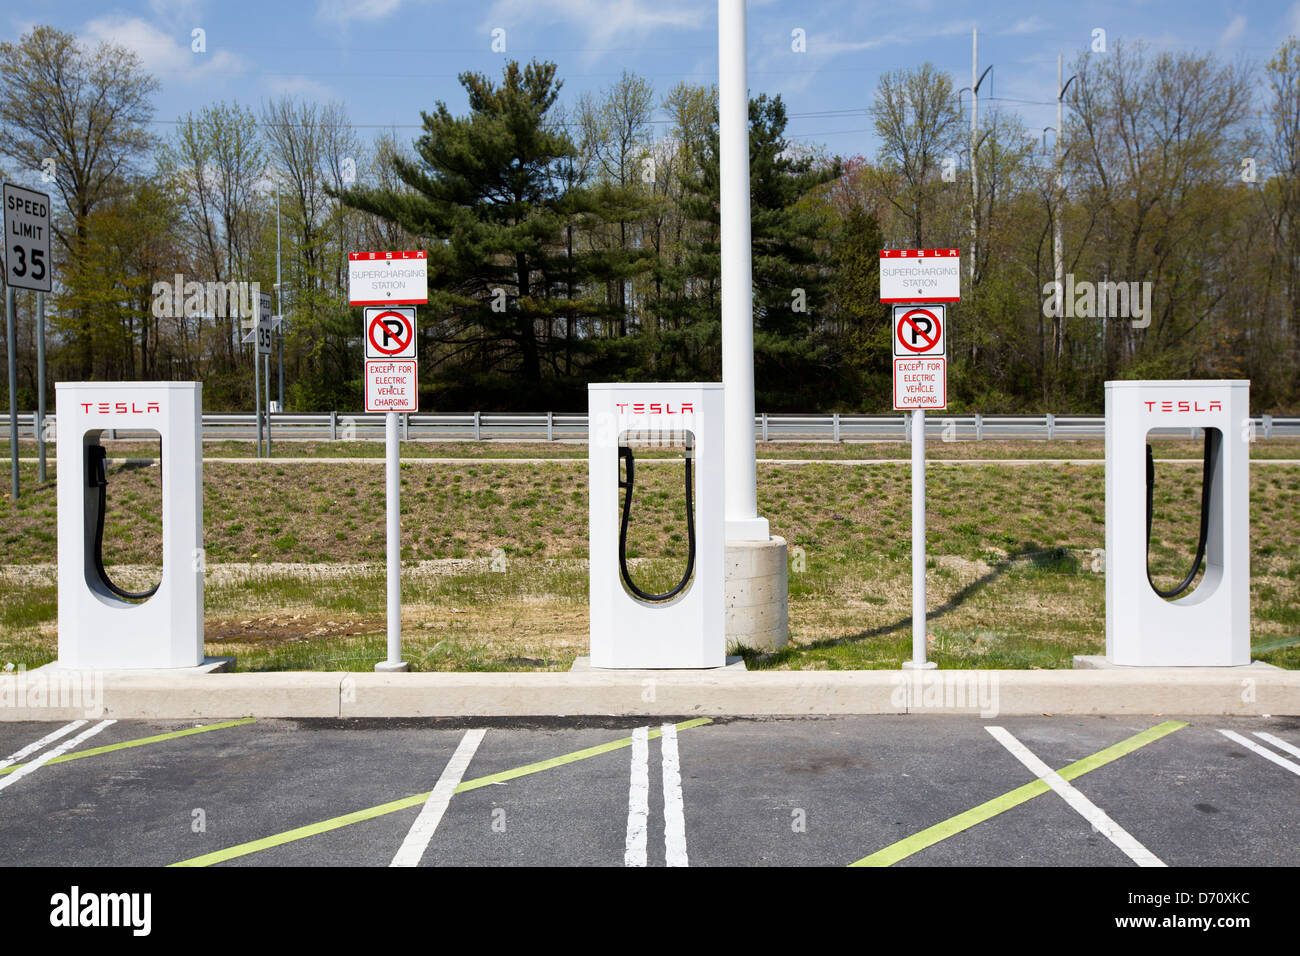 A Tesla electric vehicle Supercharging Station along Interstate 95 in Delaware.  - Stock Image